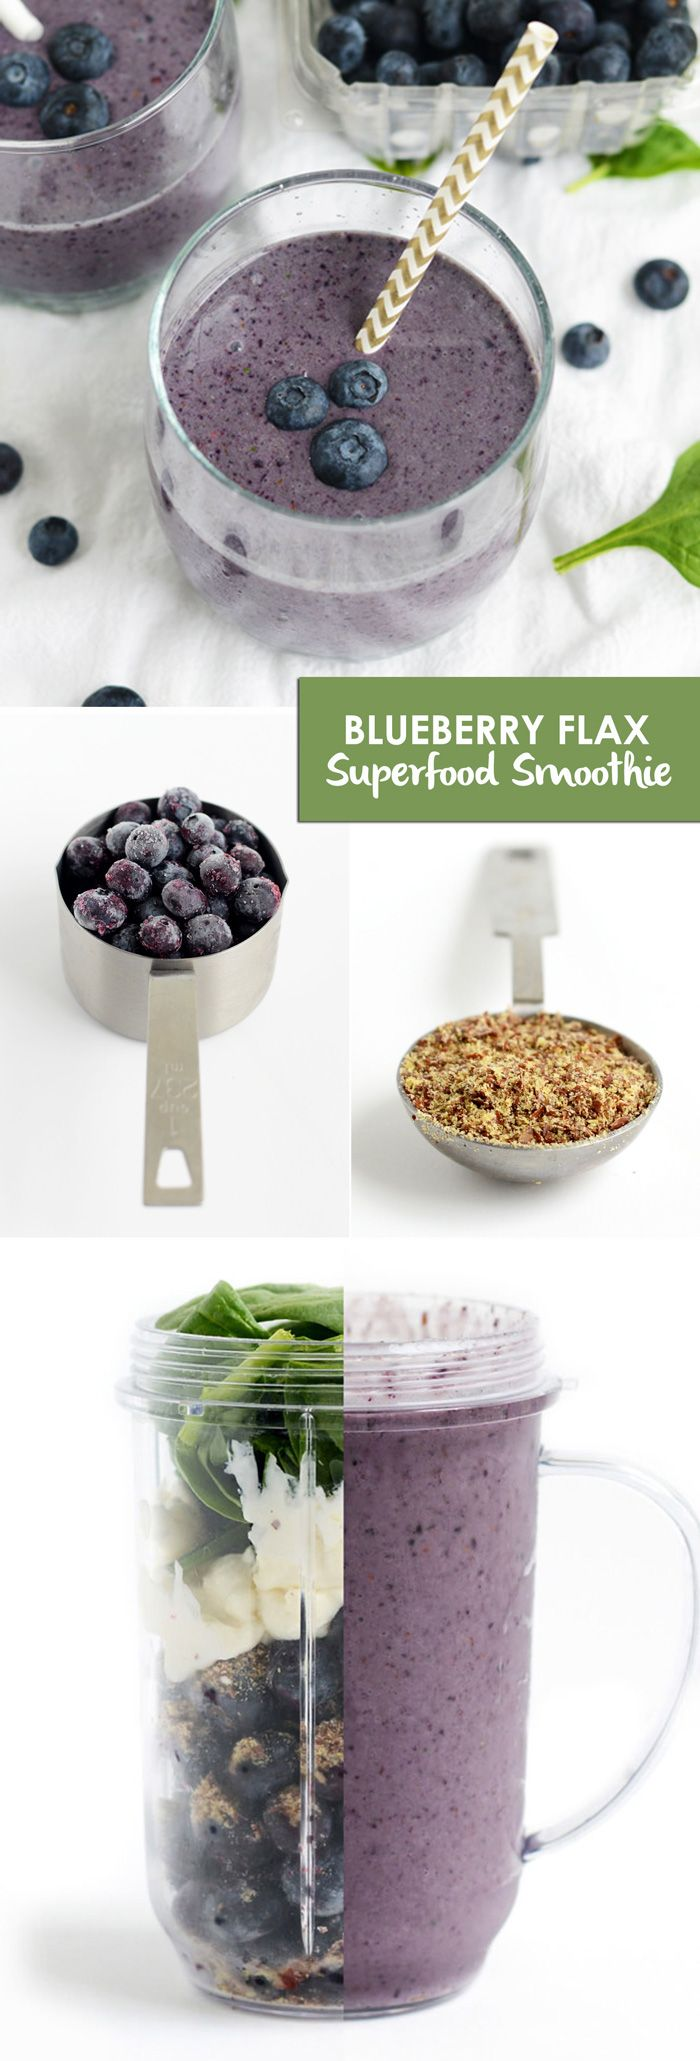 Blueberry Flax Superfood Smoothie // blueberries, flax seed, spinach & coconut milk #energy #healthy